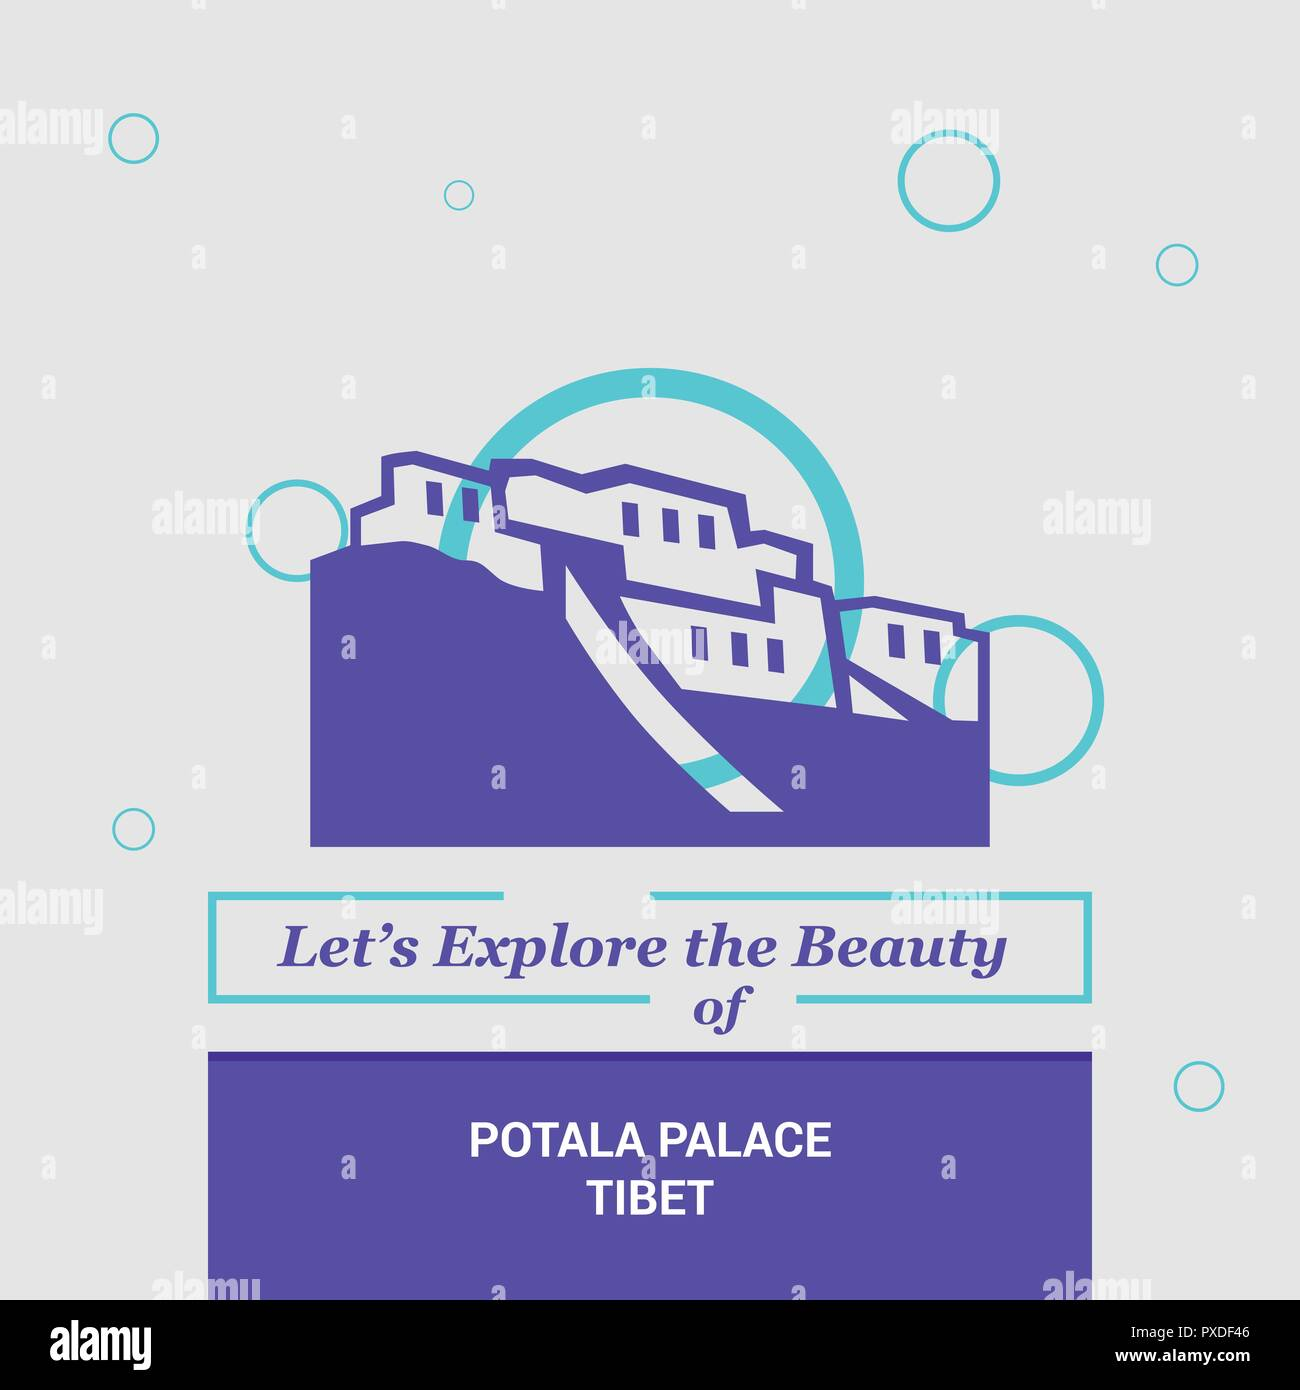 Let's Explore the beauty of Potala Palace, Tibet National Landmarks - Stock Vector